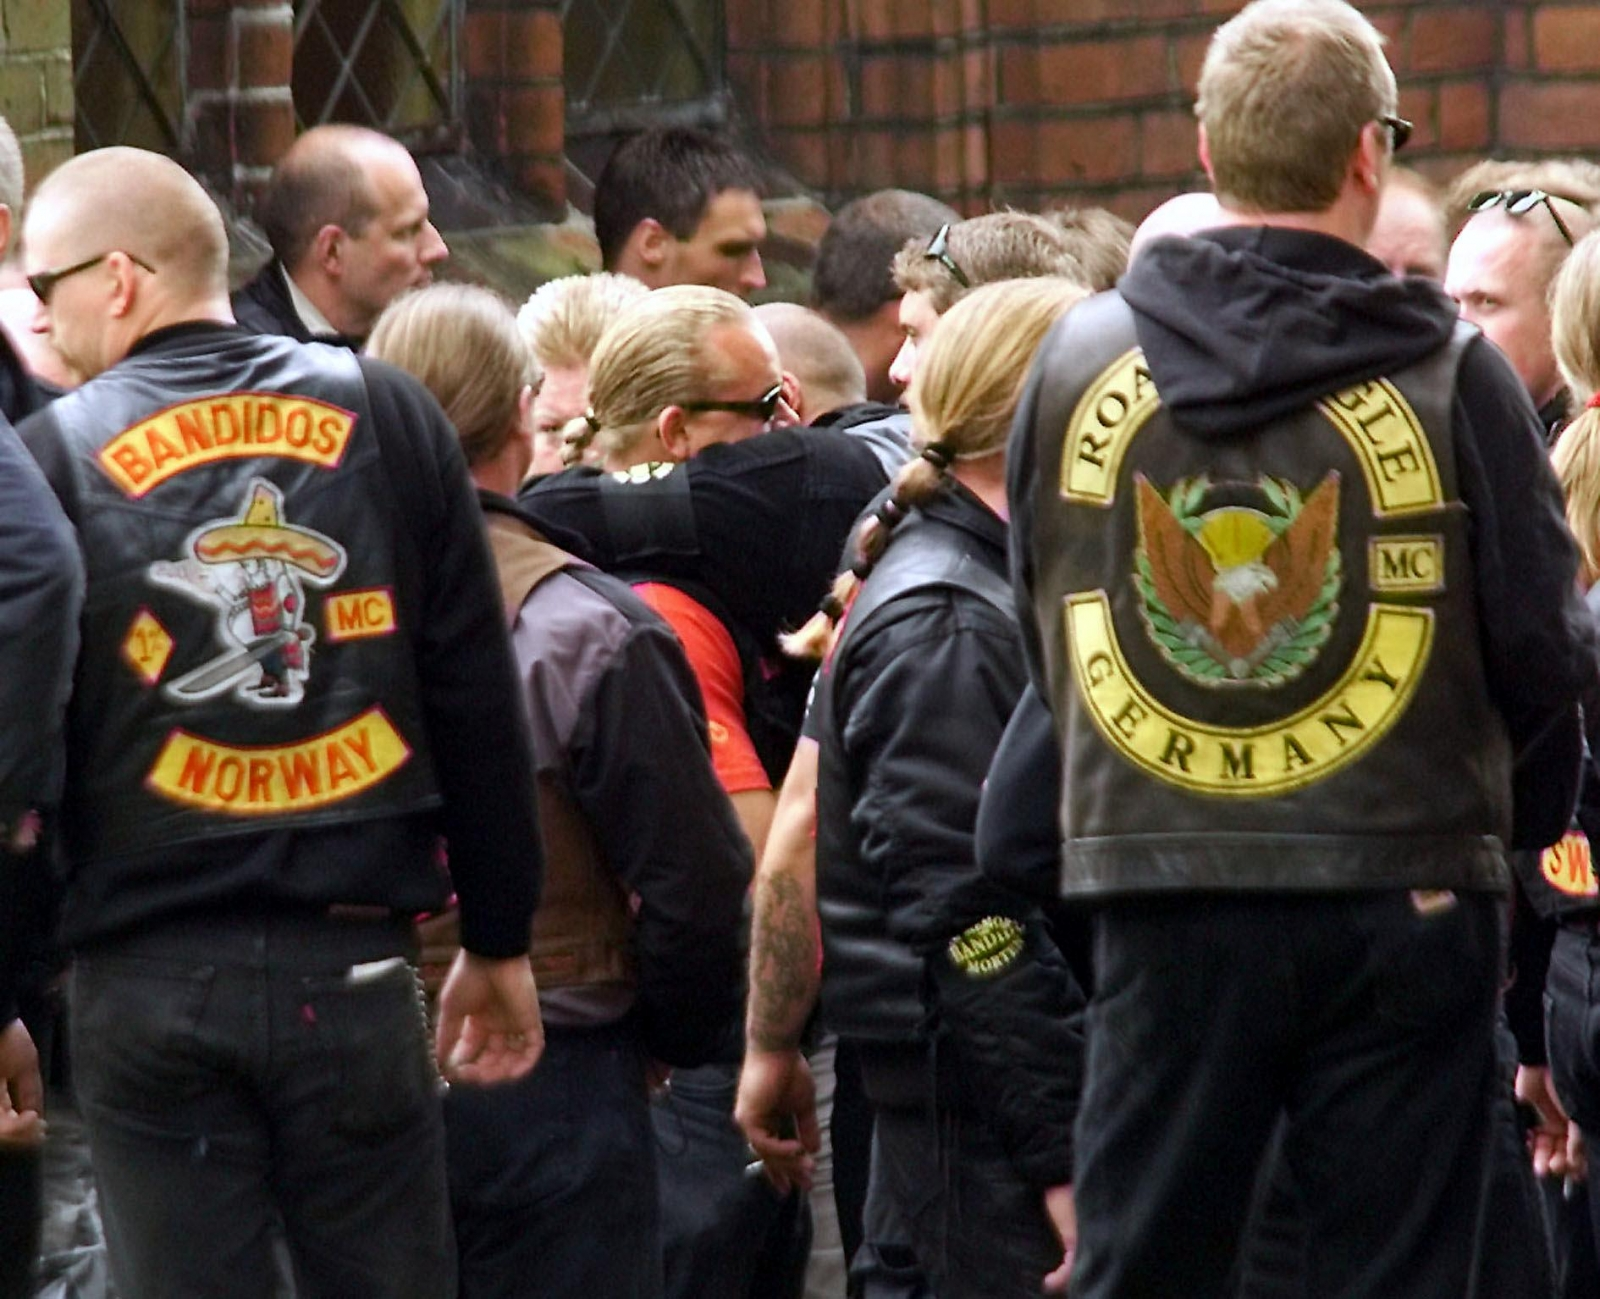 Swedish Politican Was Chief of Notorious Biker Gang